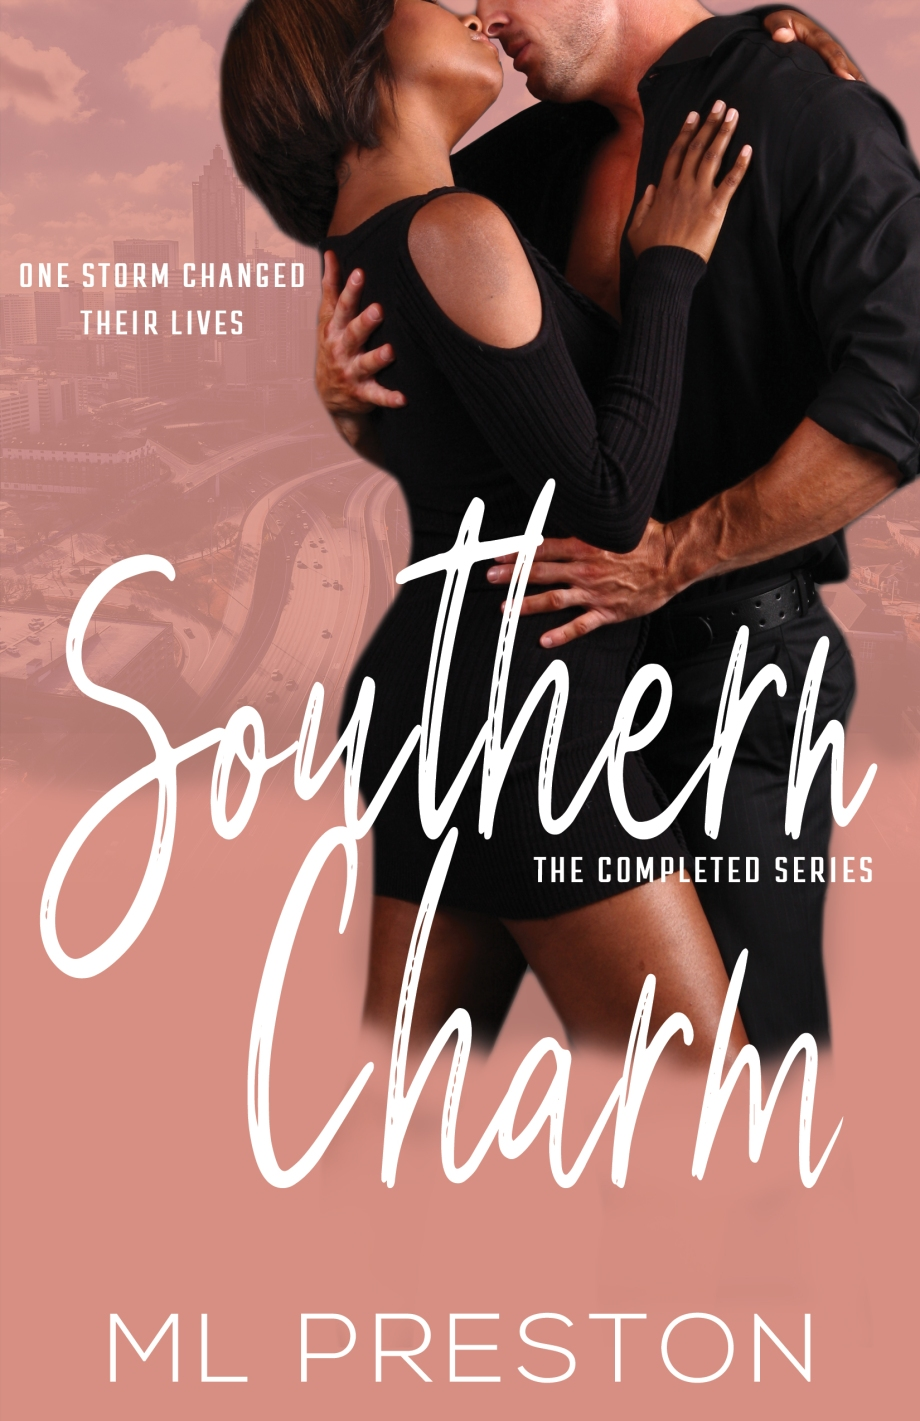 ML Preston - Southern Charm Cover